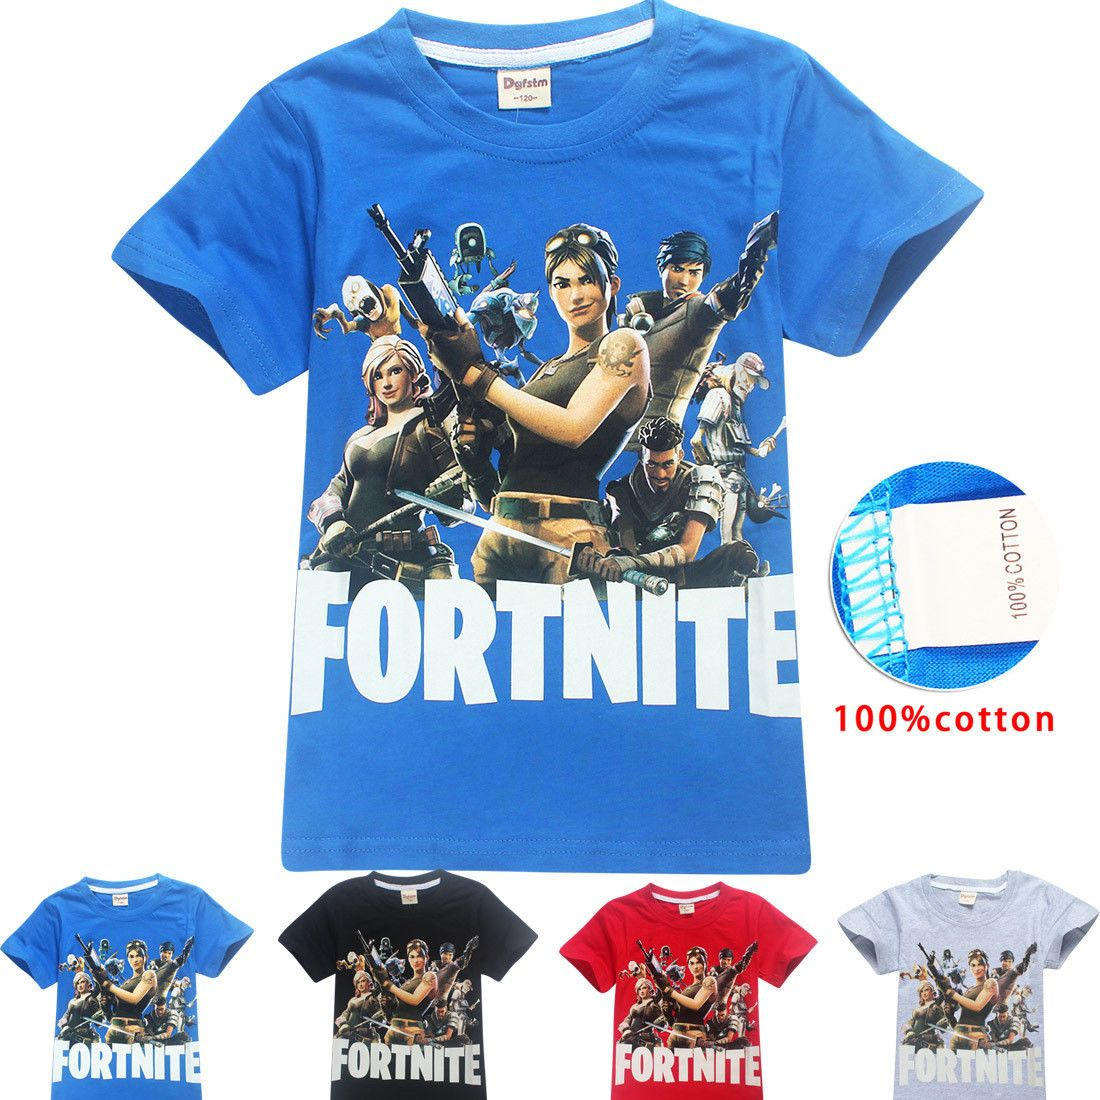 100% Cotton Fashion Kids Battle Royale Boys Girls T Shirt Tops Gamer Tee Gift Kids' Clothes, Shoes & Accs.